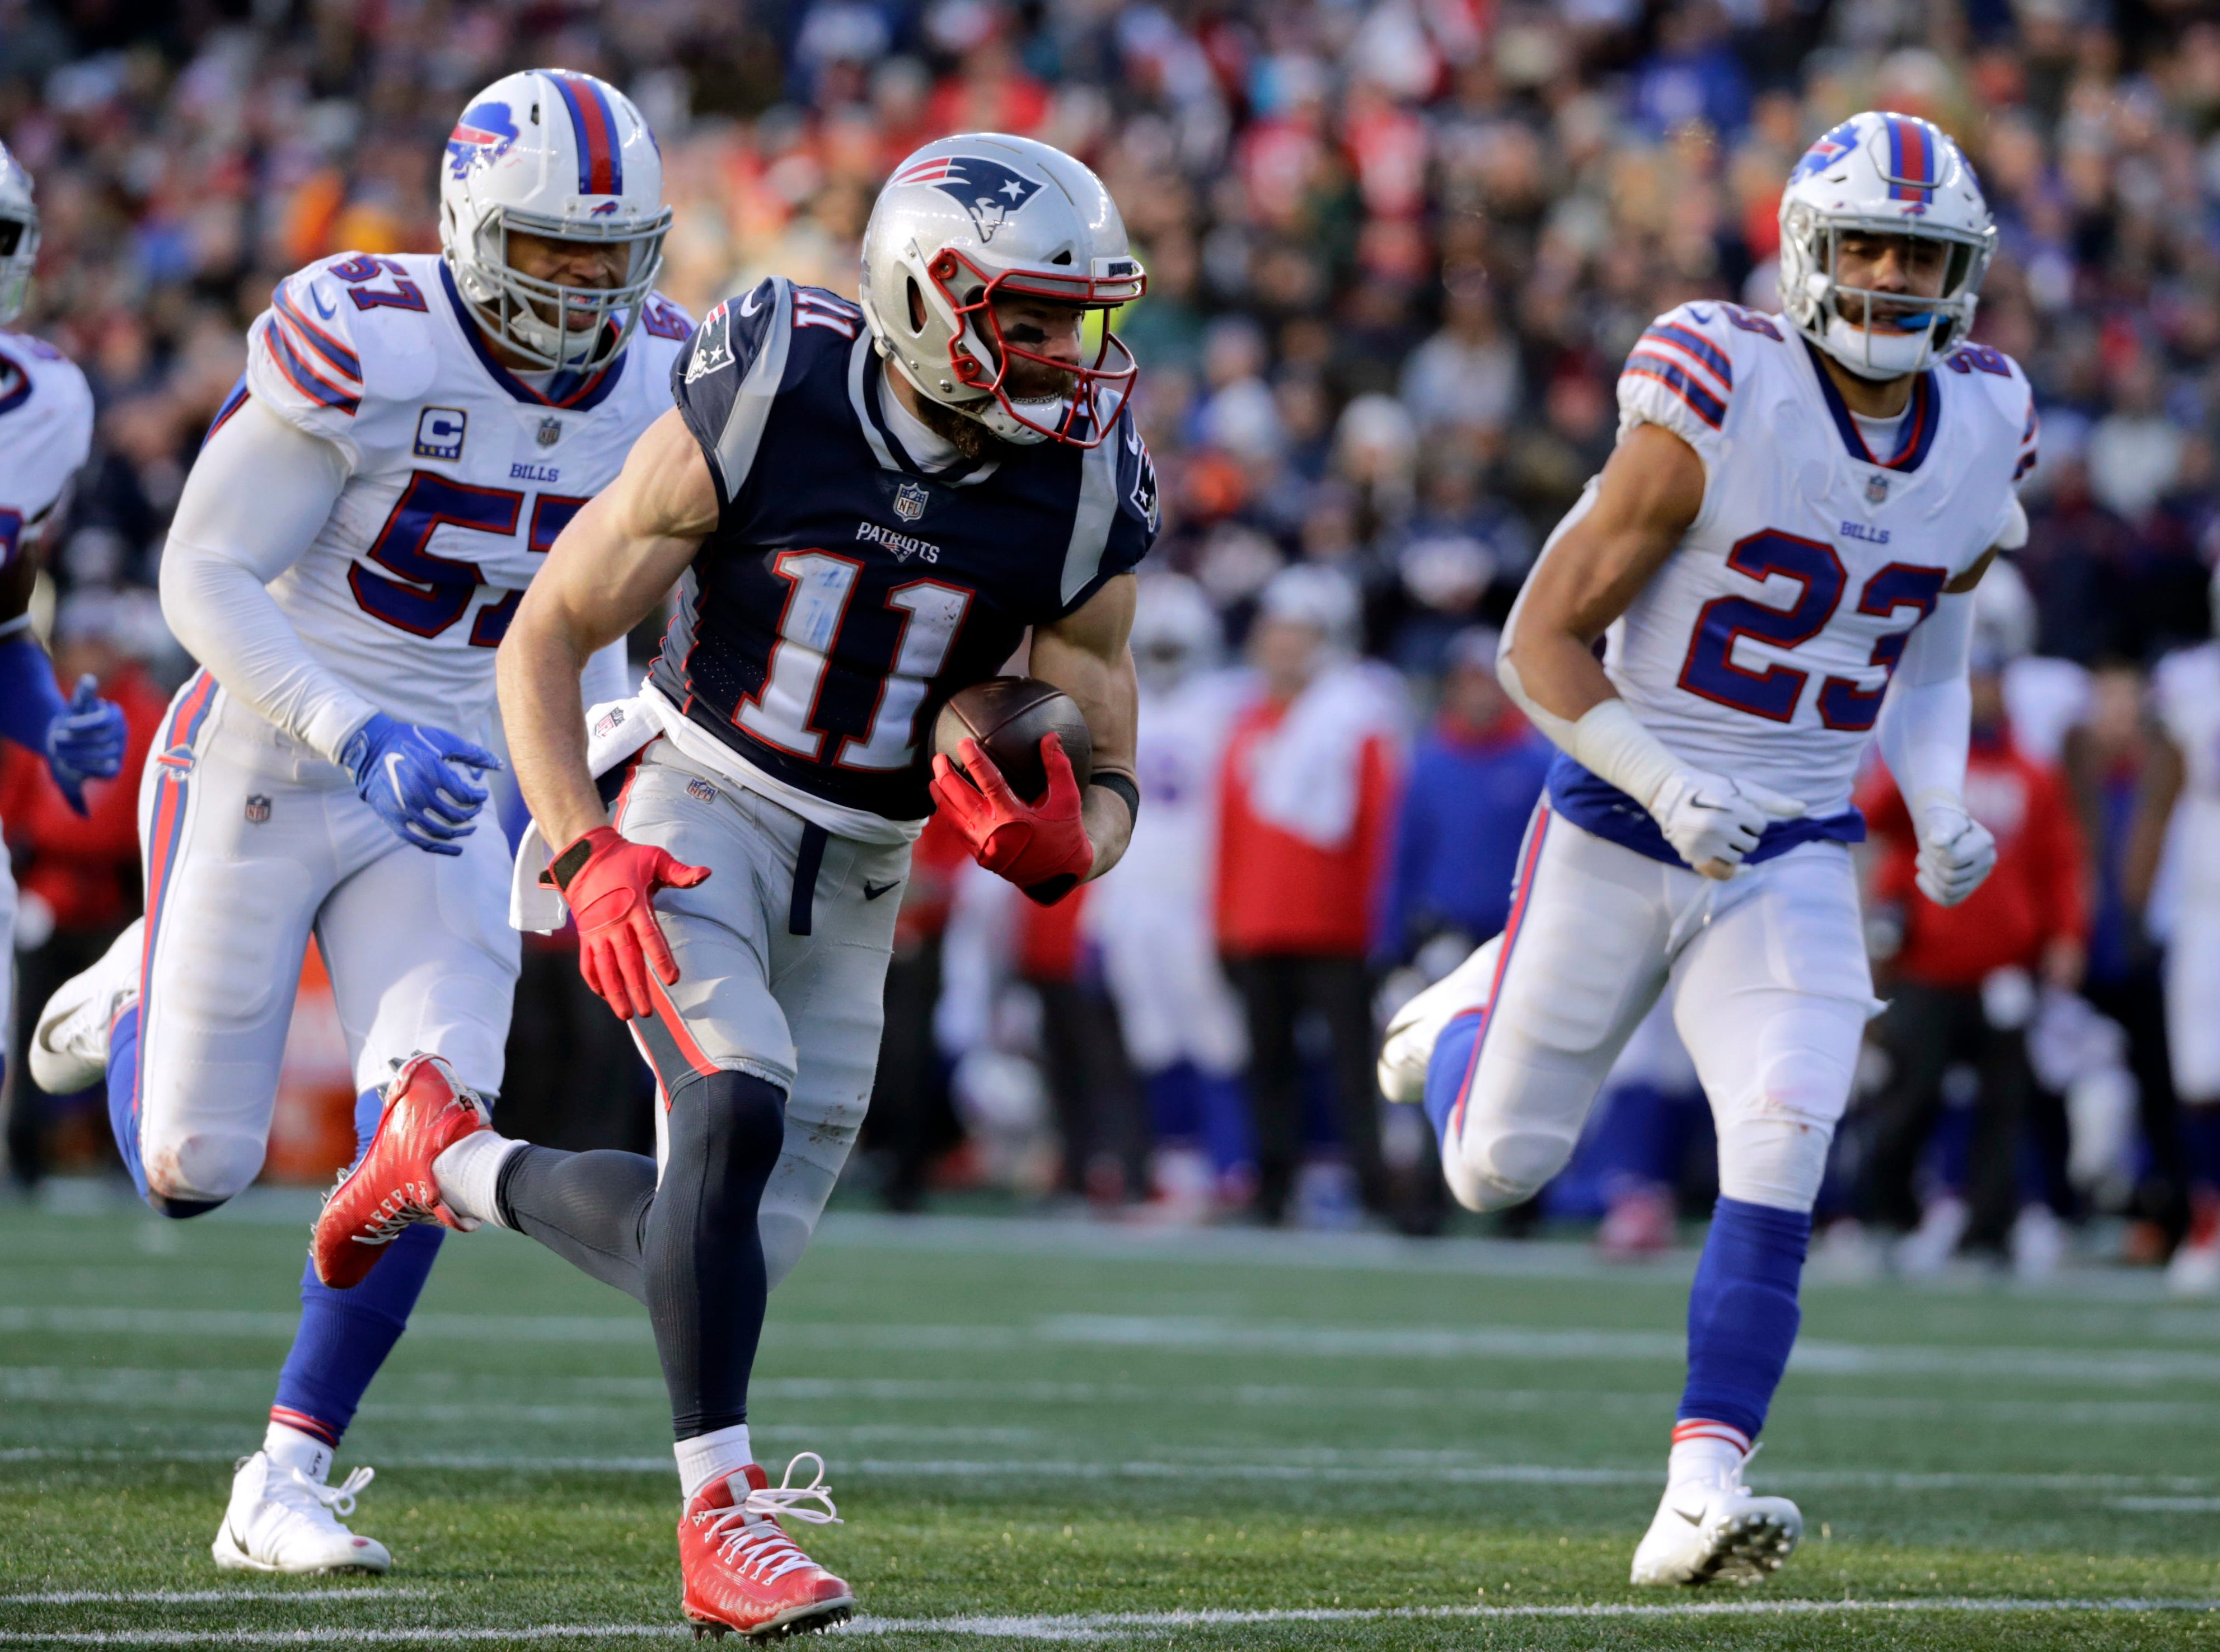 New England Patriots wide receiver Julian Edelman (11) runs from Buffalo Bills defenders Corey Thompson, left, Lorenzo Alexander and Micah Hyde, right, on his way to a touchdown after catching a pass during the second half of an NFL football game, Sunday, Dec. 23, 2018, in Foxborough, Mass. (AP Photo/Elise Amendola)